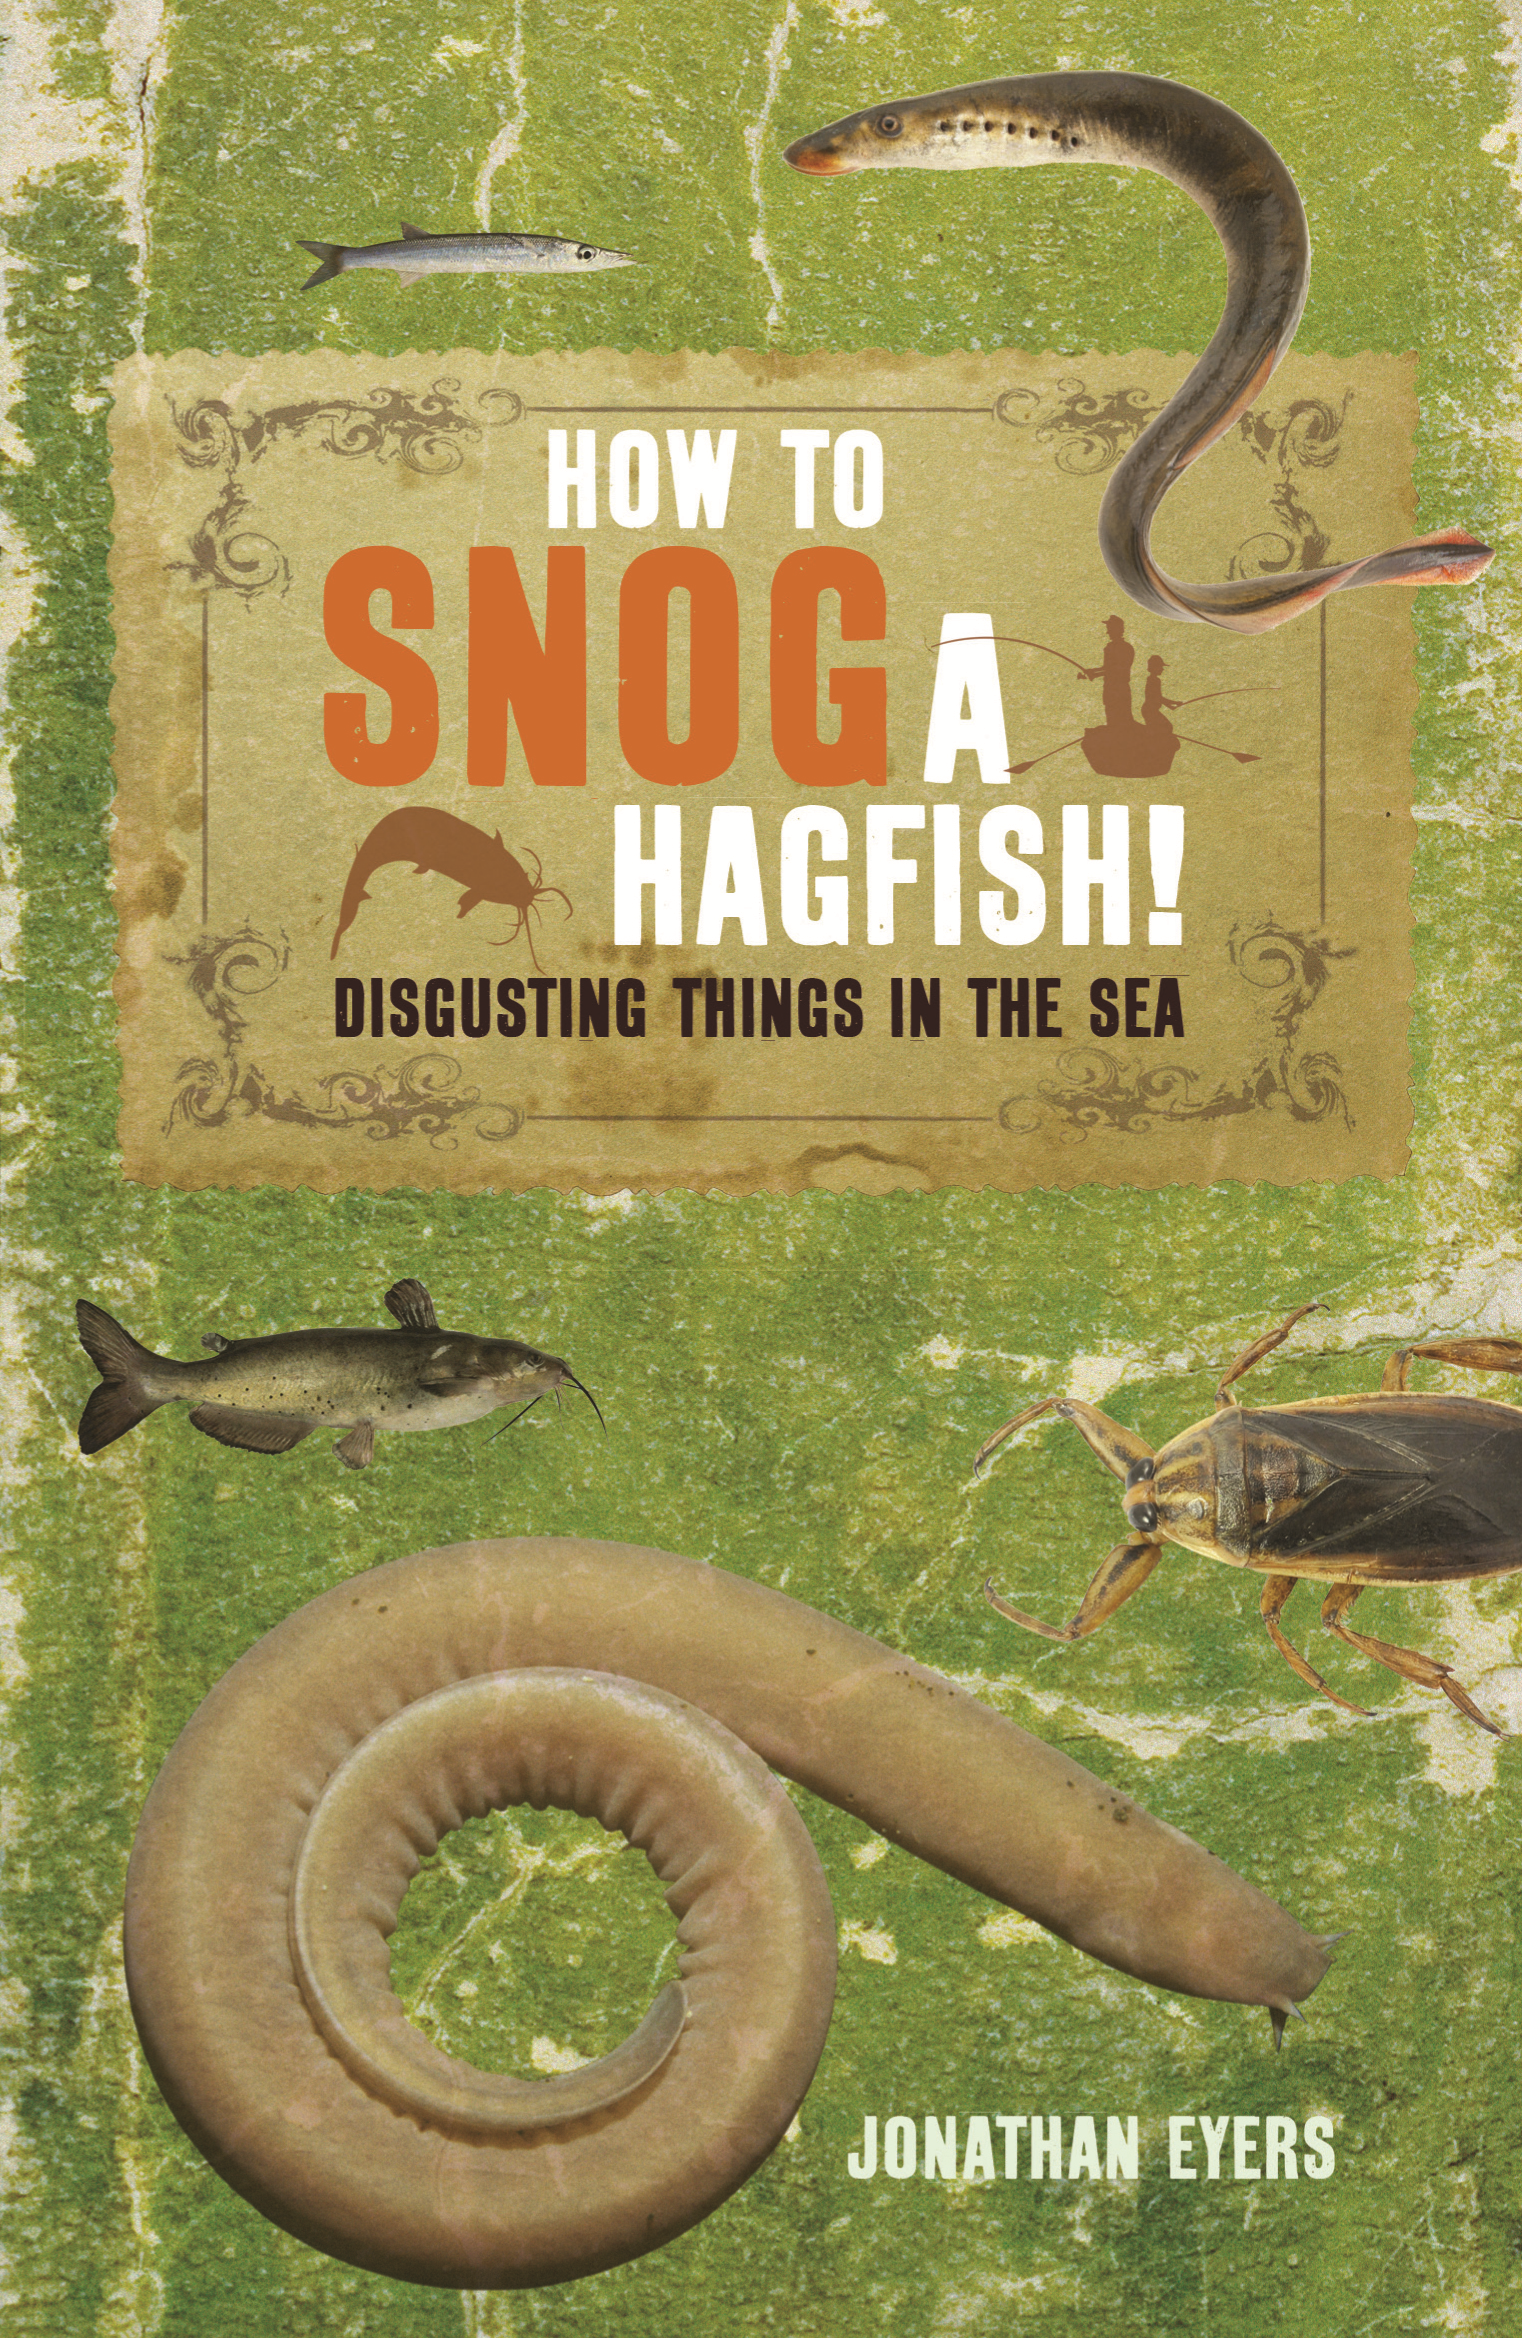 How to Snog a Hagfish! Disgusting Things in the Sea